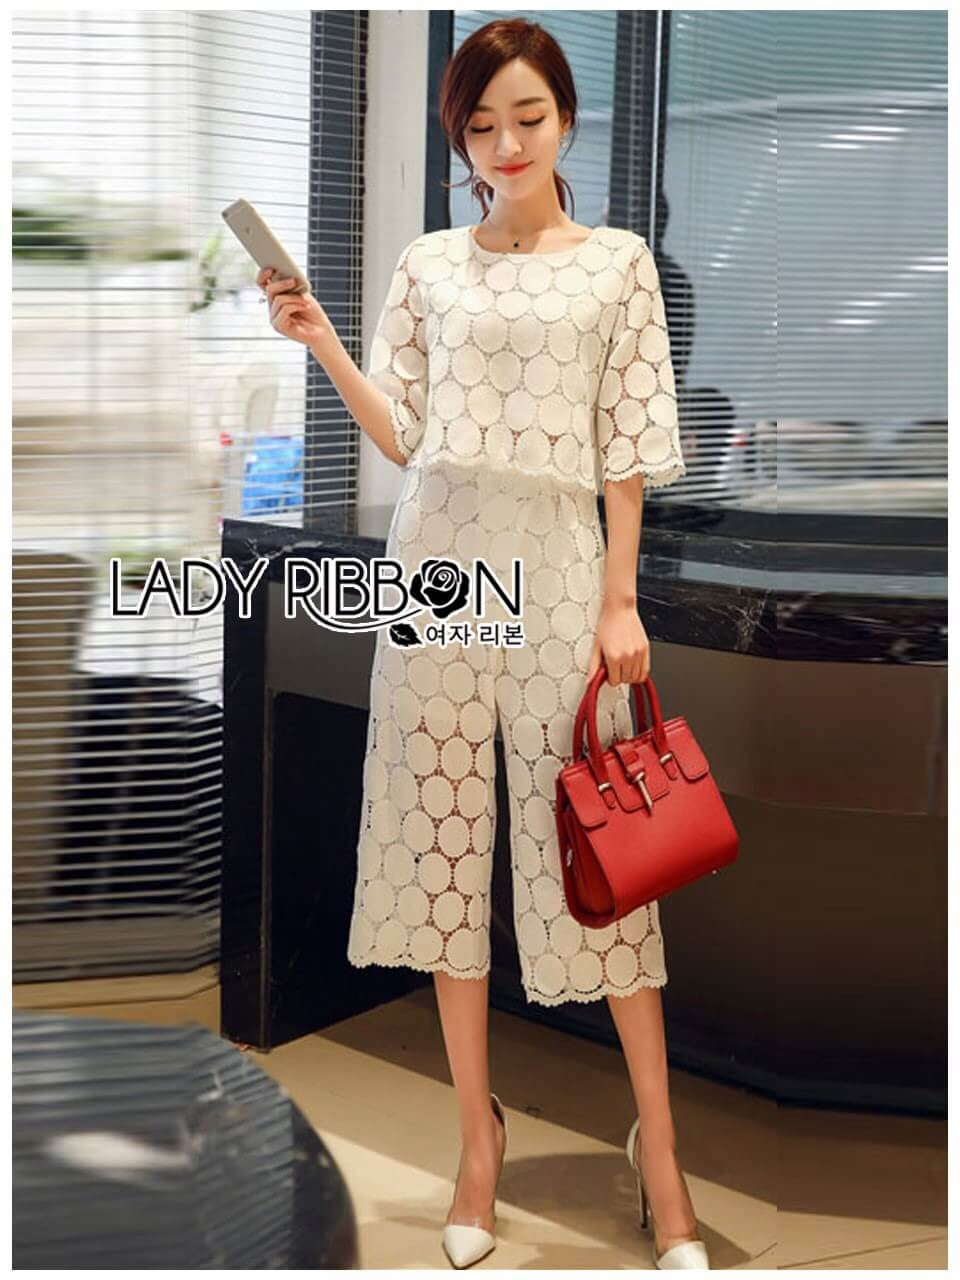 &#x1F380 Lady Ribbon's Made &#x1F380 Lady Ariana Round n' Round Cotton Embroidered Top and Pants Set